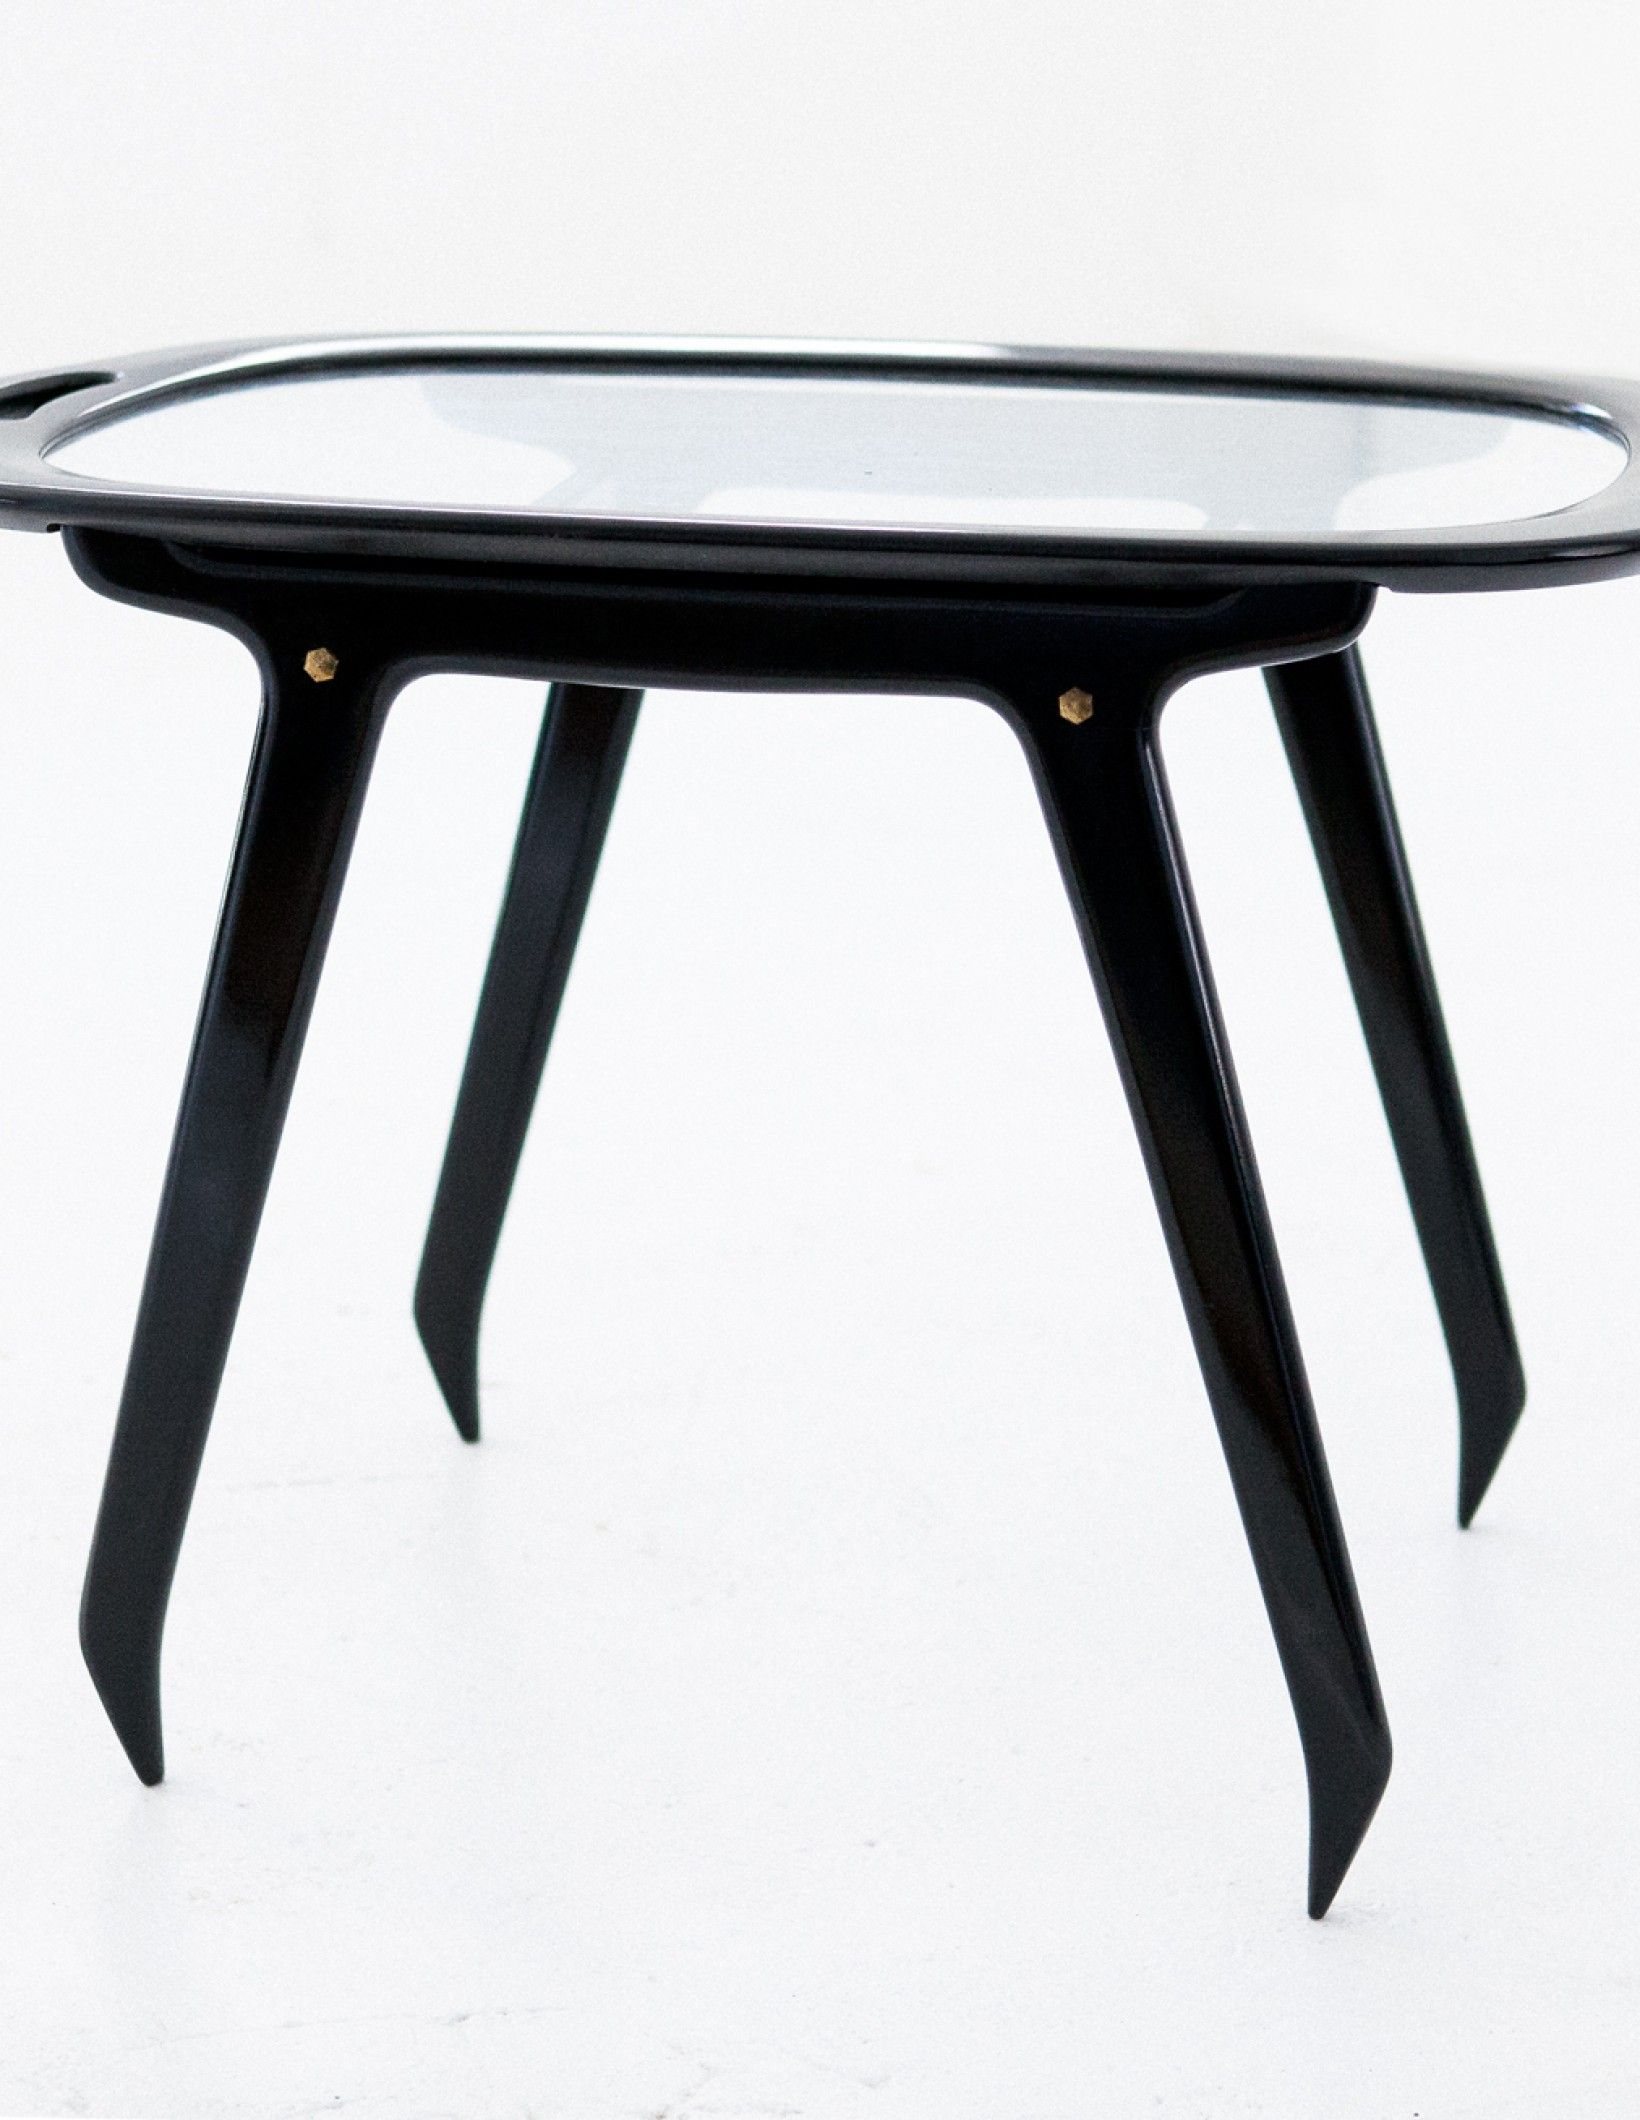 Italian Black Wood And Glass Coffee Table By Cesare Lacca 1950s T68 Red Coffee Tables Glass Floor Lamp Modern Dining Arm Chairs [ 2120 x 1640 Pixel ]